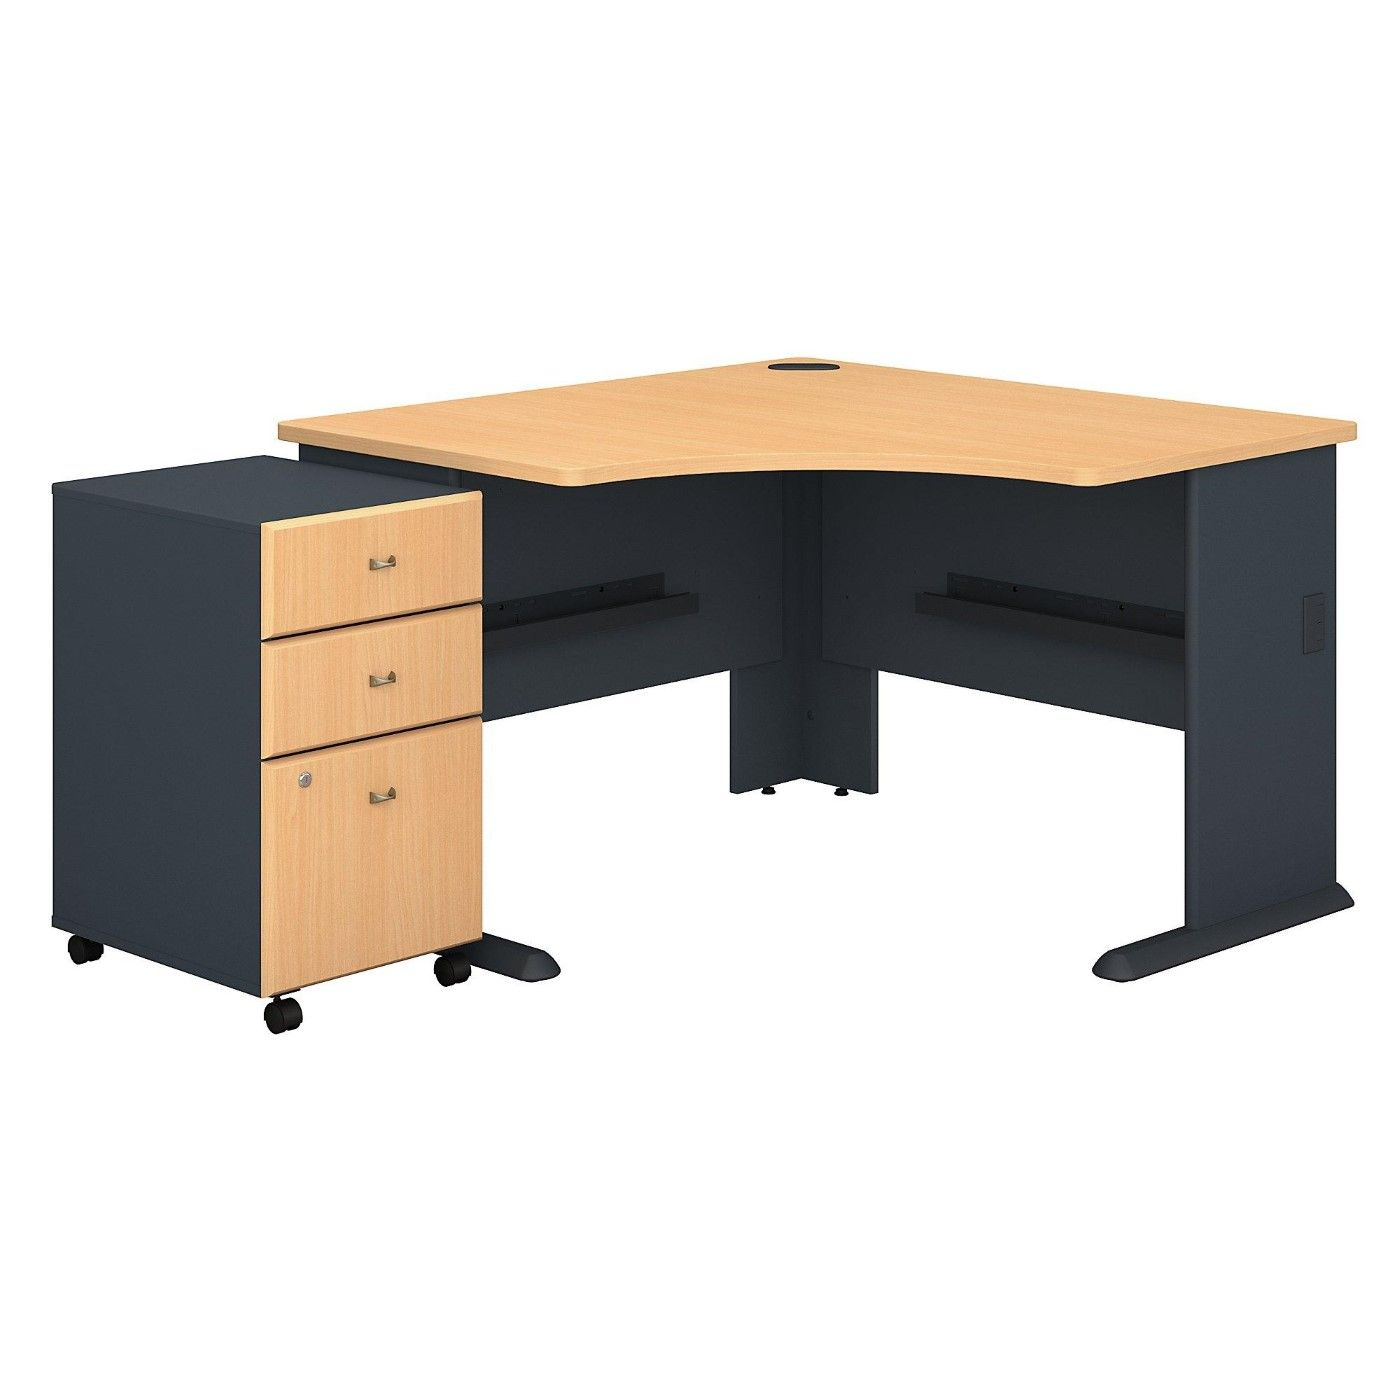 <font color=#c60><b>BUSH BUSINESS FURNITURE SERIES A 48W CORNER DESK WITH MOBILE FILE CABINET EH-SRA035BESU. FREE SHIPPING</font></b>